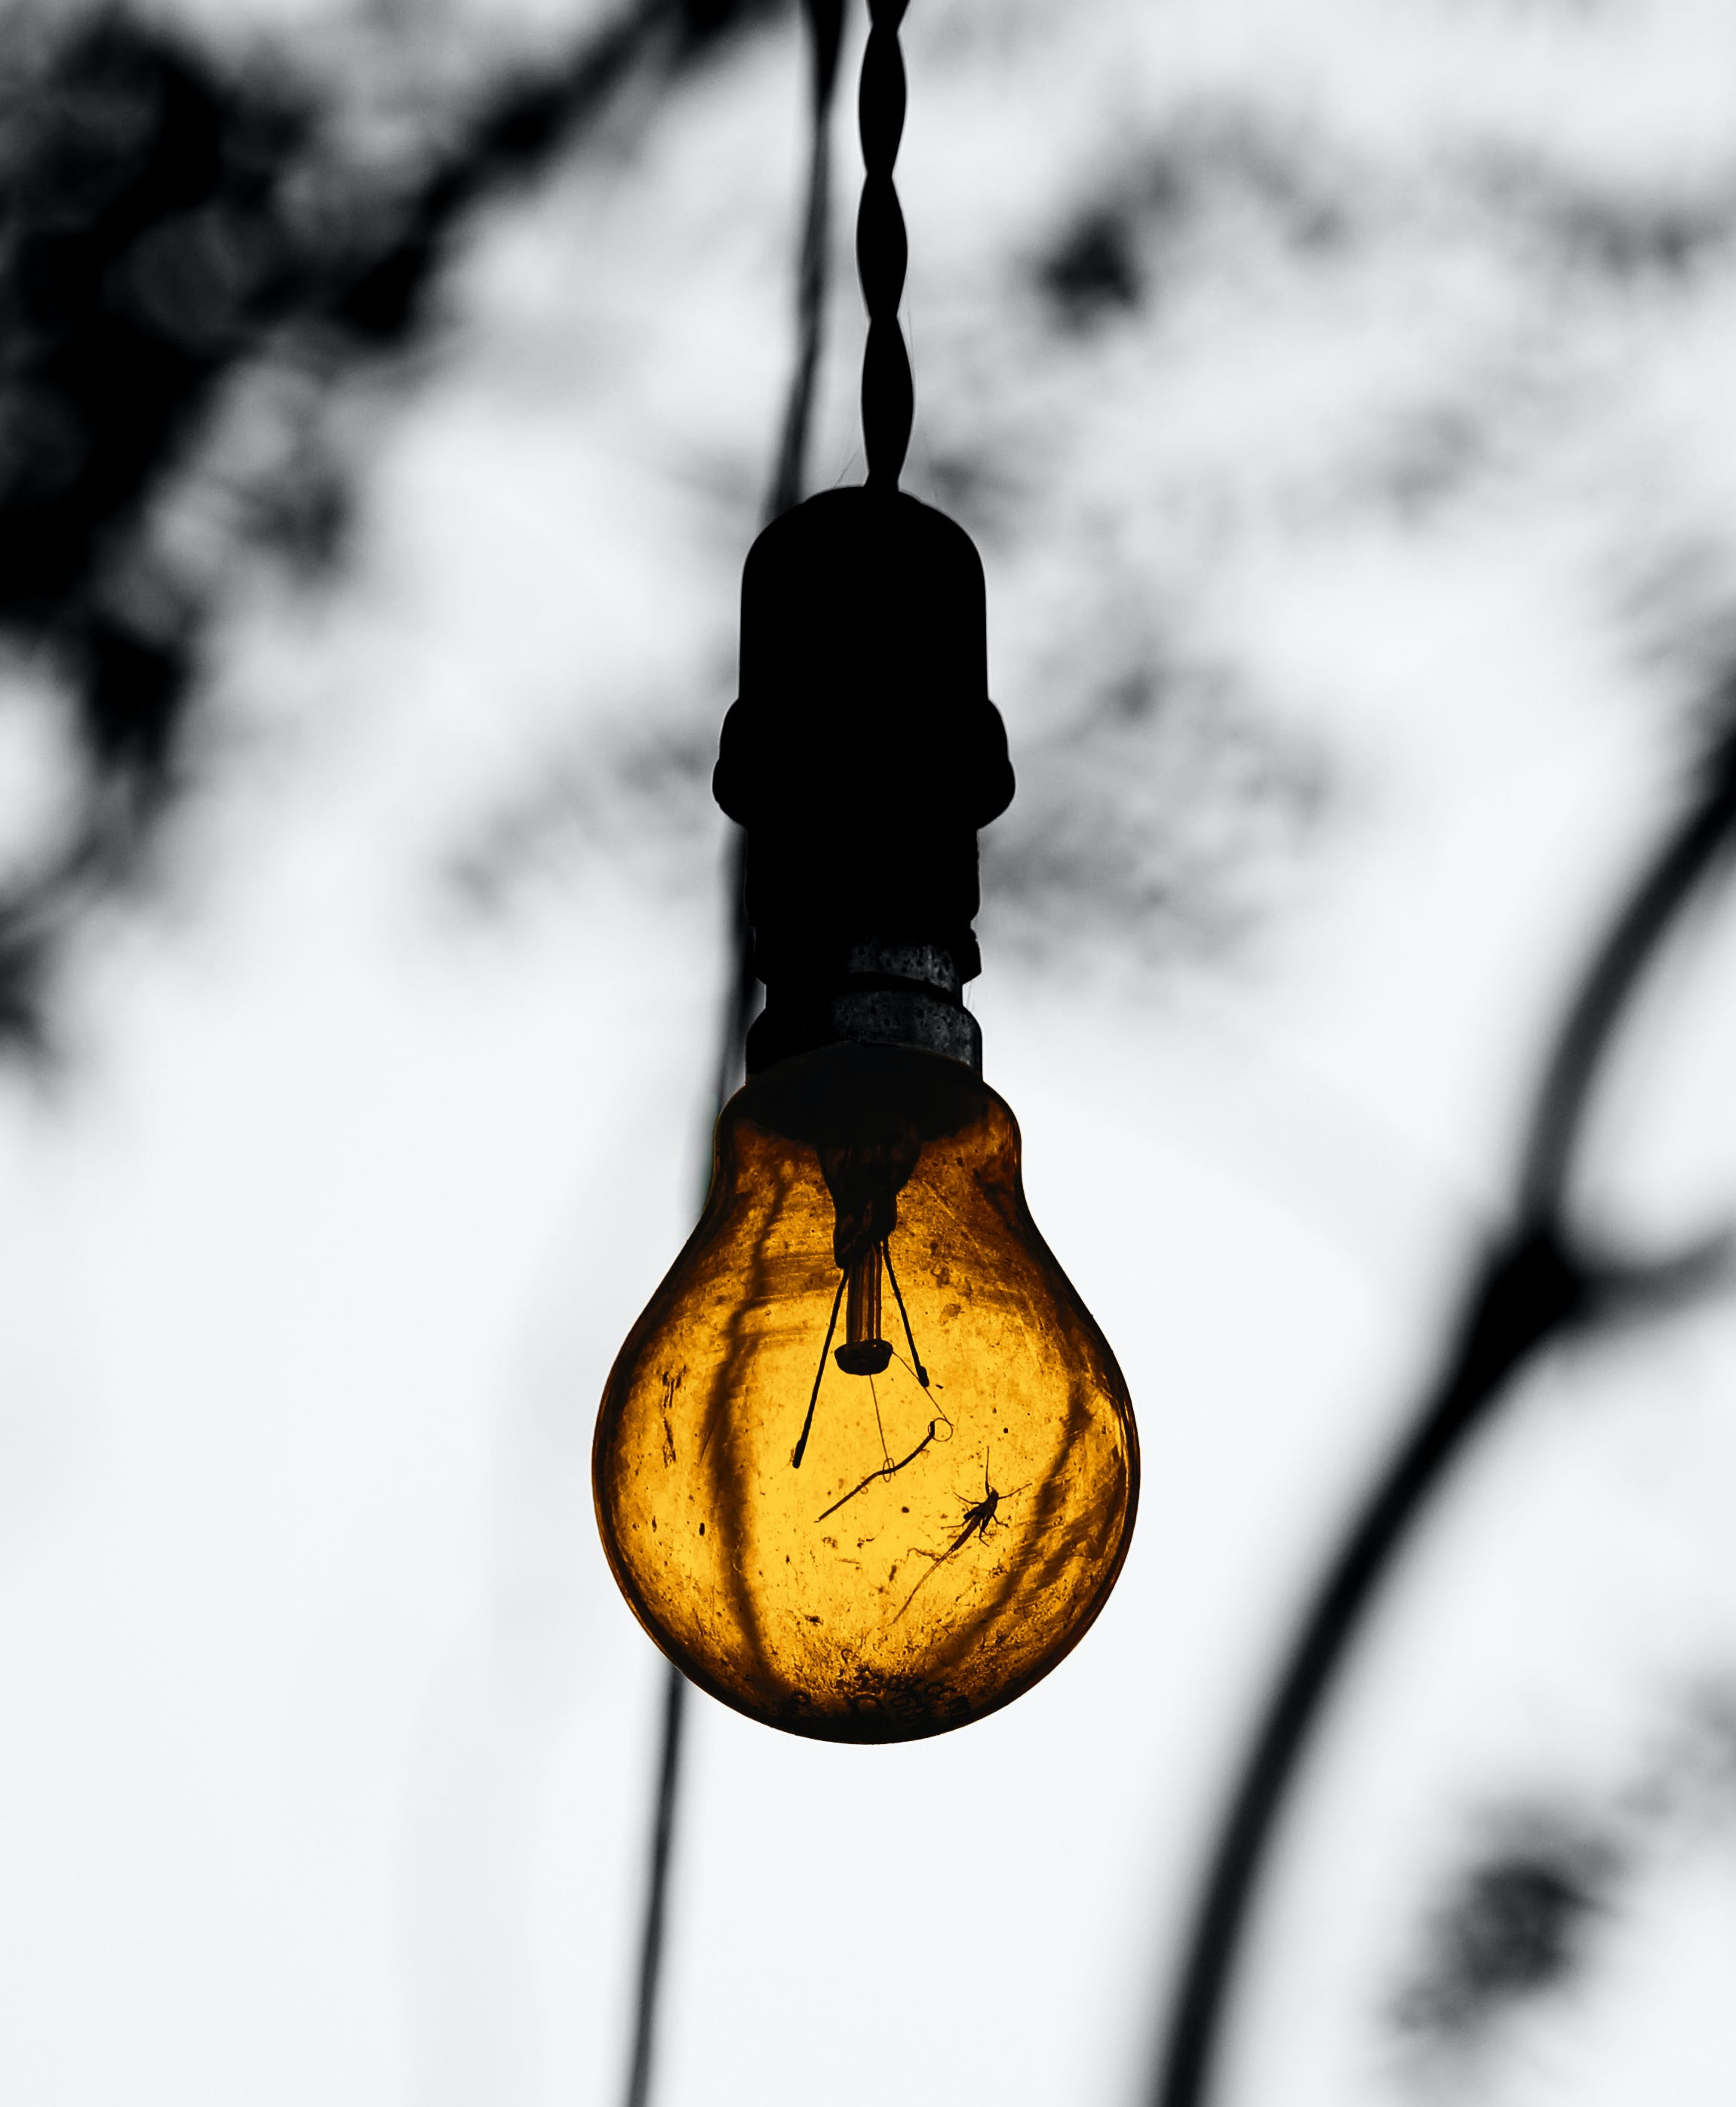 Close-Up Photography of Lightbulb